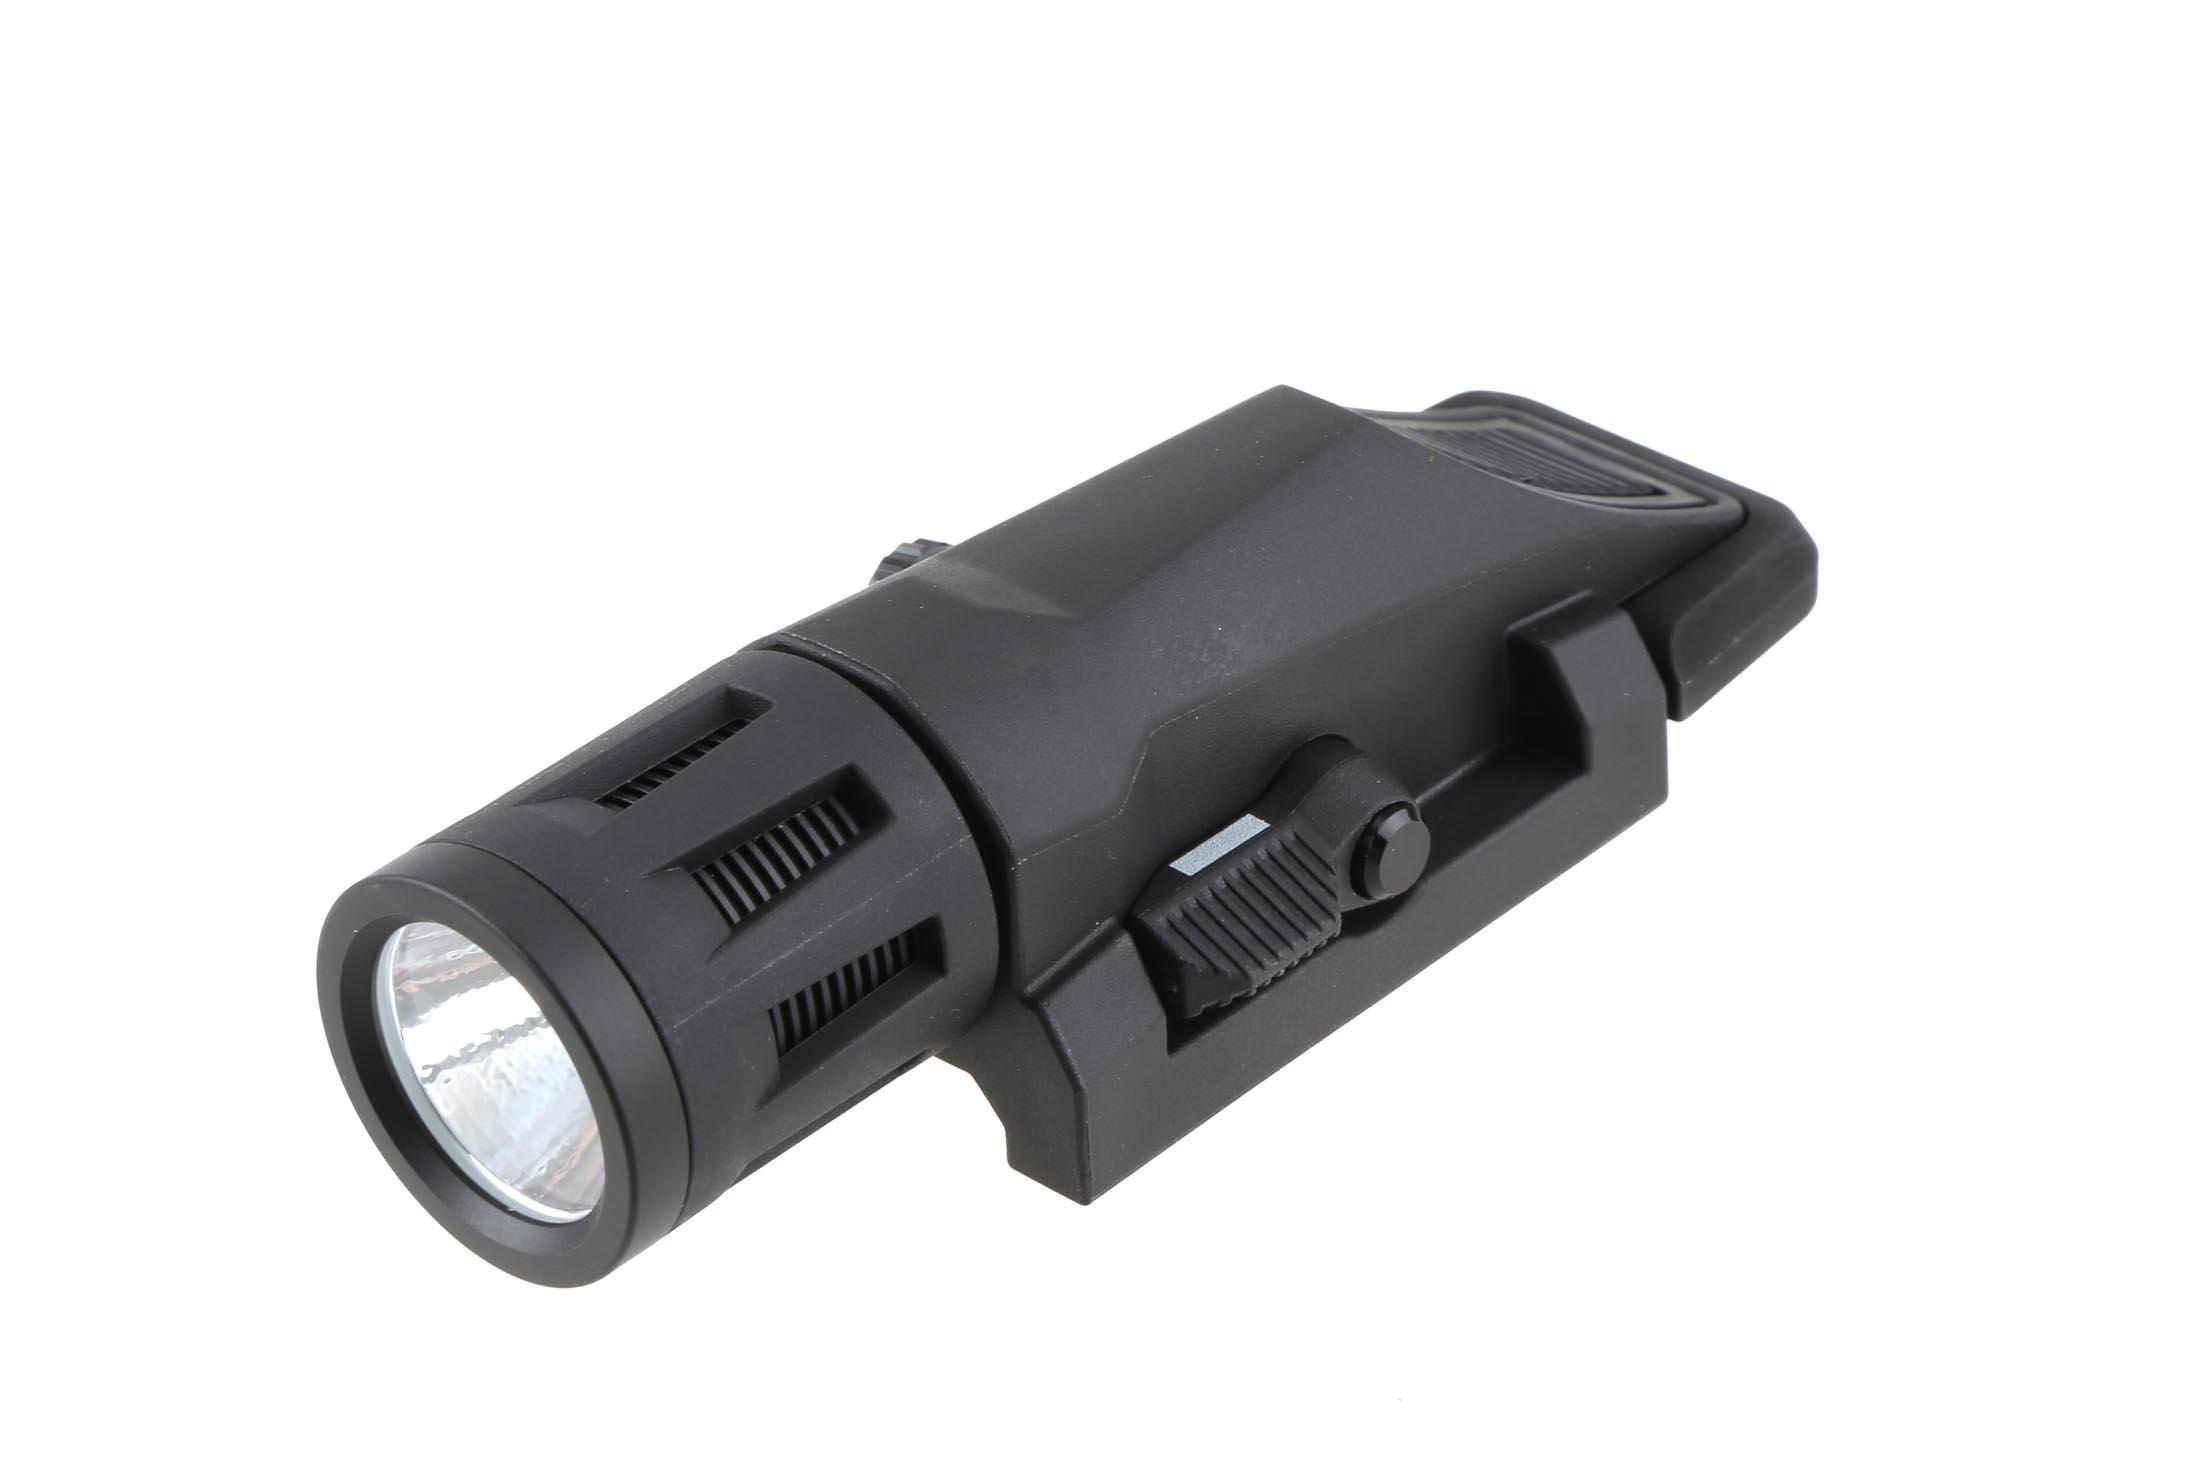 Inforce lights are made from reinforced polymer and are shockproof and water proof